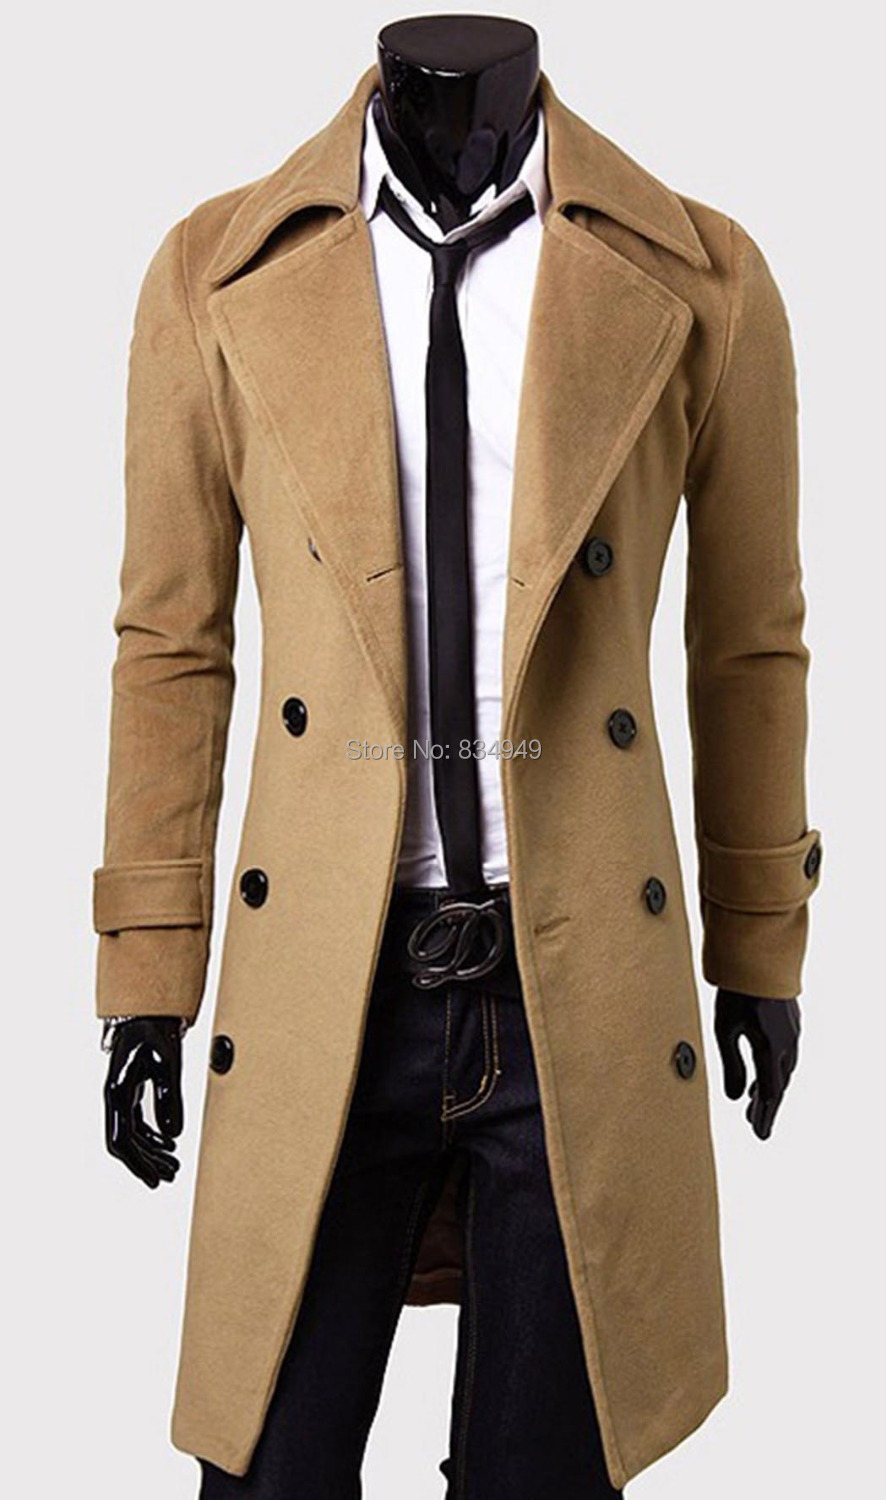 Brown Coat Promotion-Shop for Promotional Brown Coat on Aliexpress.com